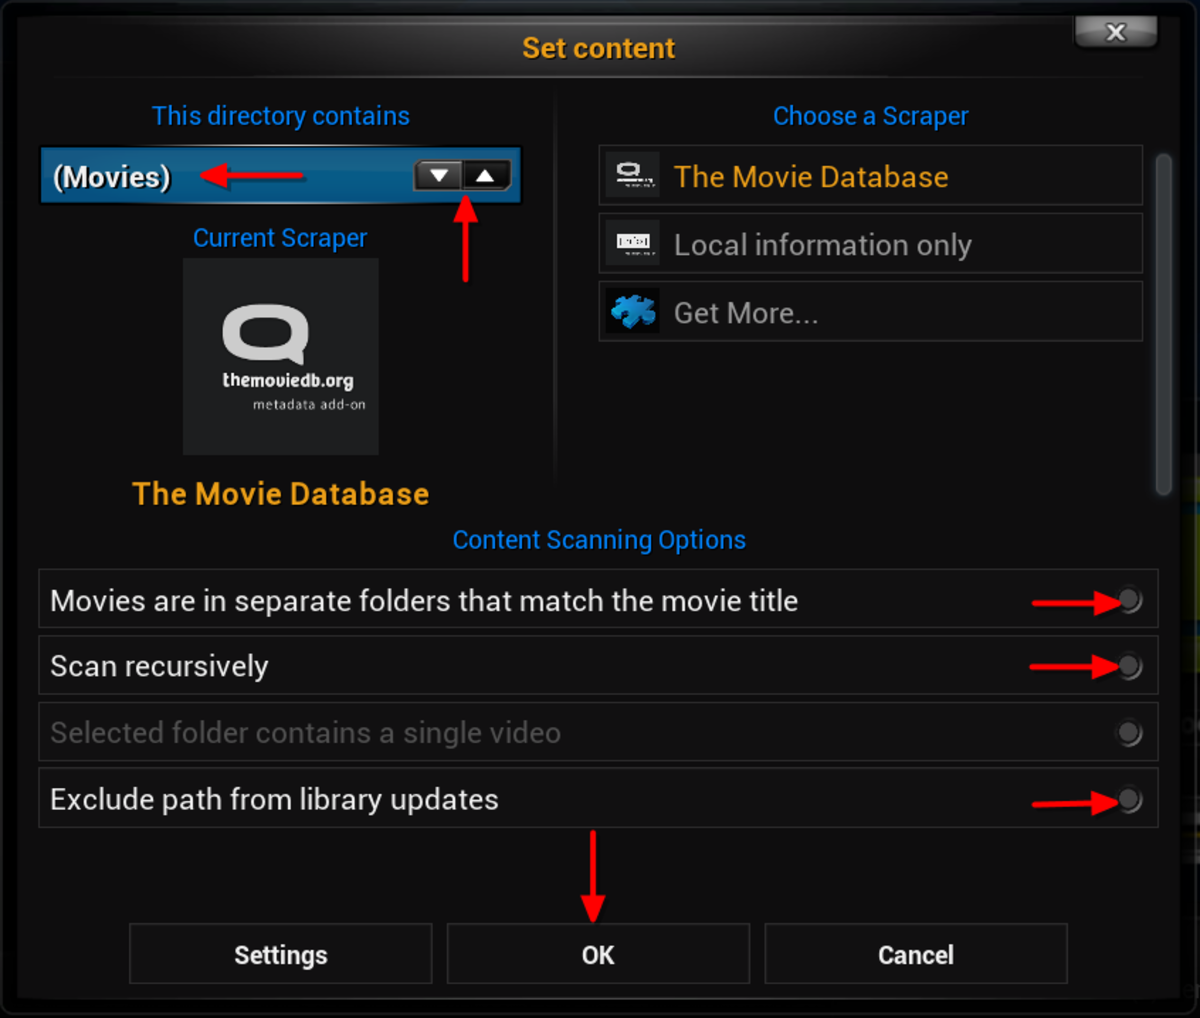 "Select the content type contained in the media source by clicking the up/down arrows. ""Scan recursively"" needs to be checked if you have subfolders such as movies organized by Genre. ""Exclude path"" should not be selected if  content will be added."